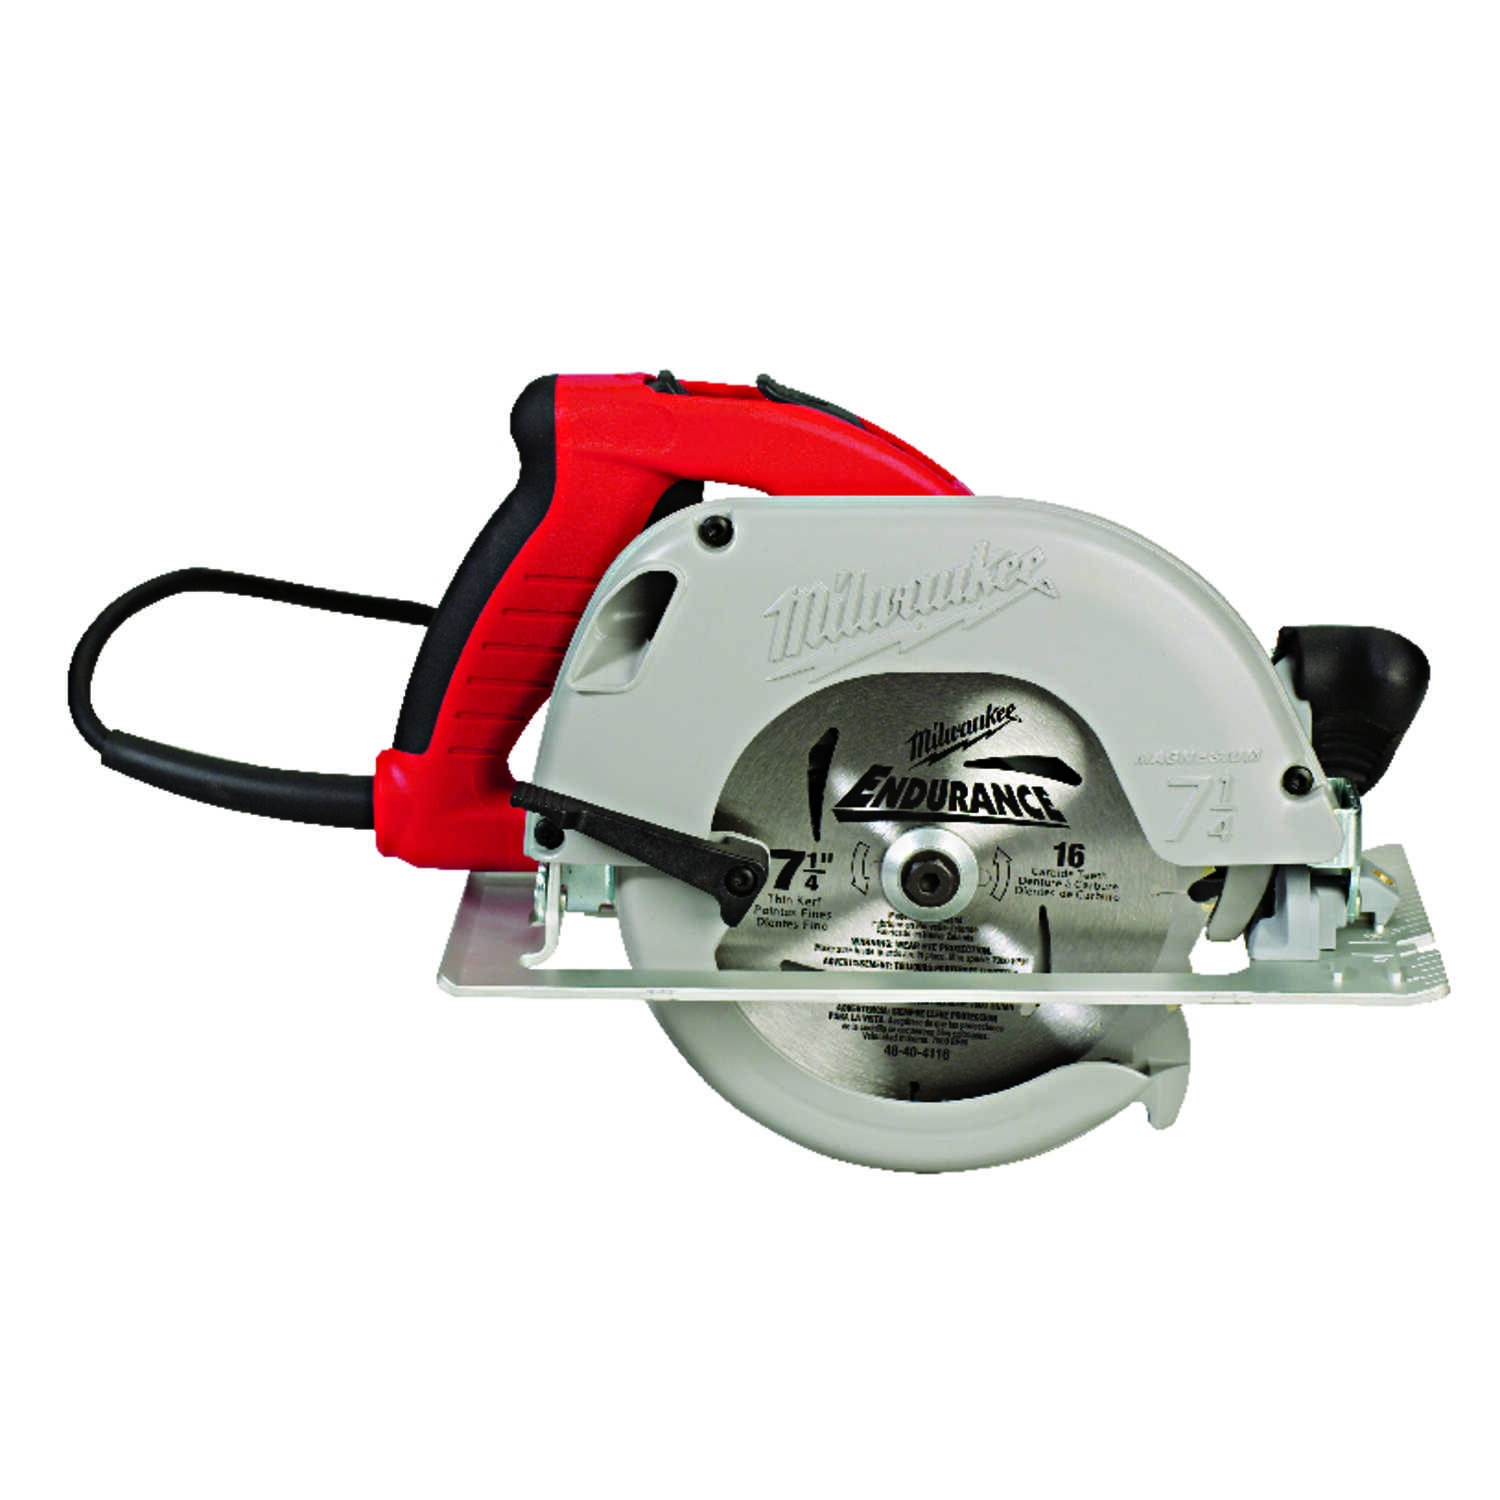 Milwaukee tilt lok 7 14 in 120 volts corded circular saw 15 amps milwaukee tilt lok 7 14 in 120 volts corded circular saw greentooth Images